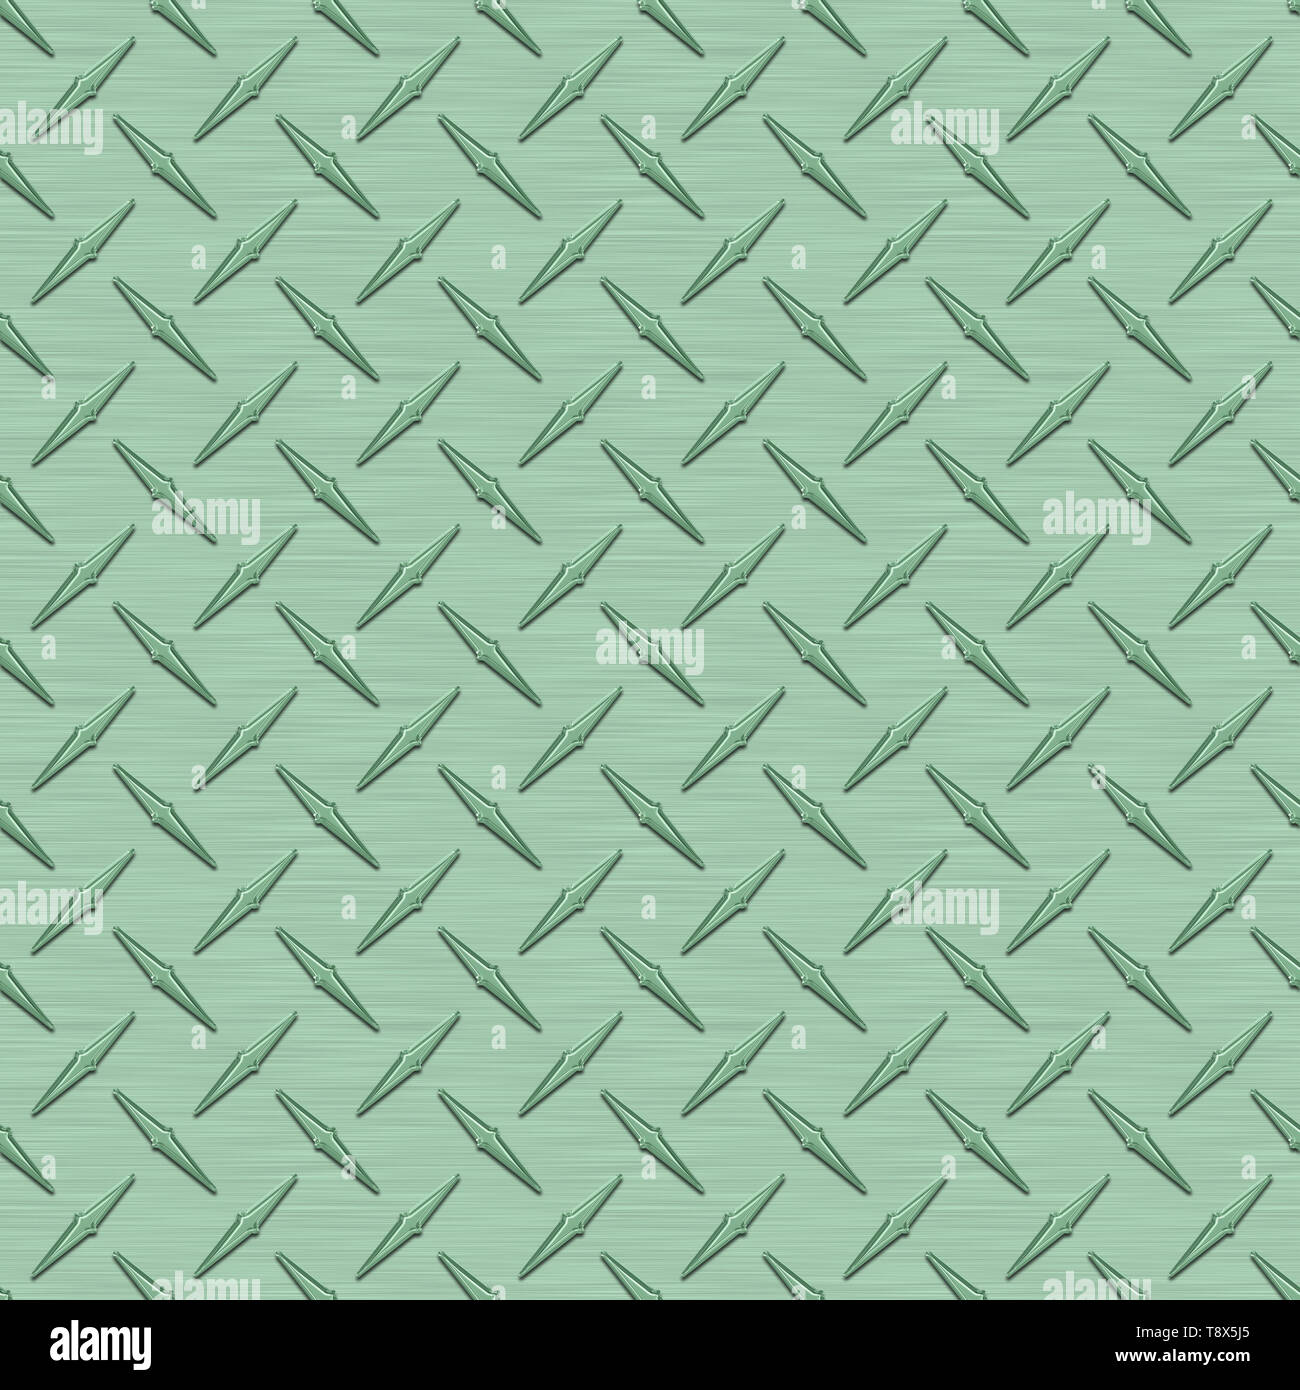 Mint Green Diamond Plate Metal Seamless Texture Tile - Stock Image